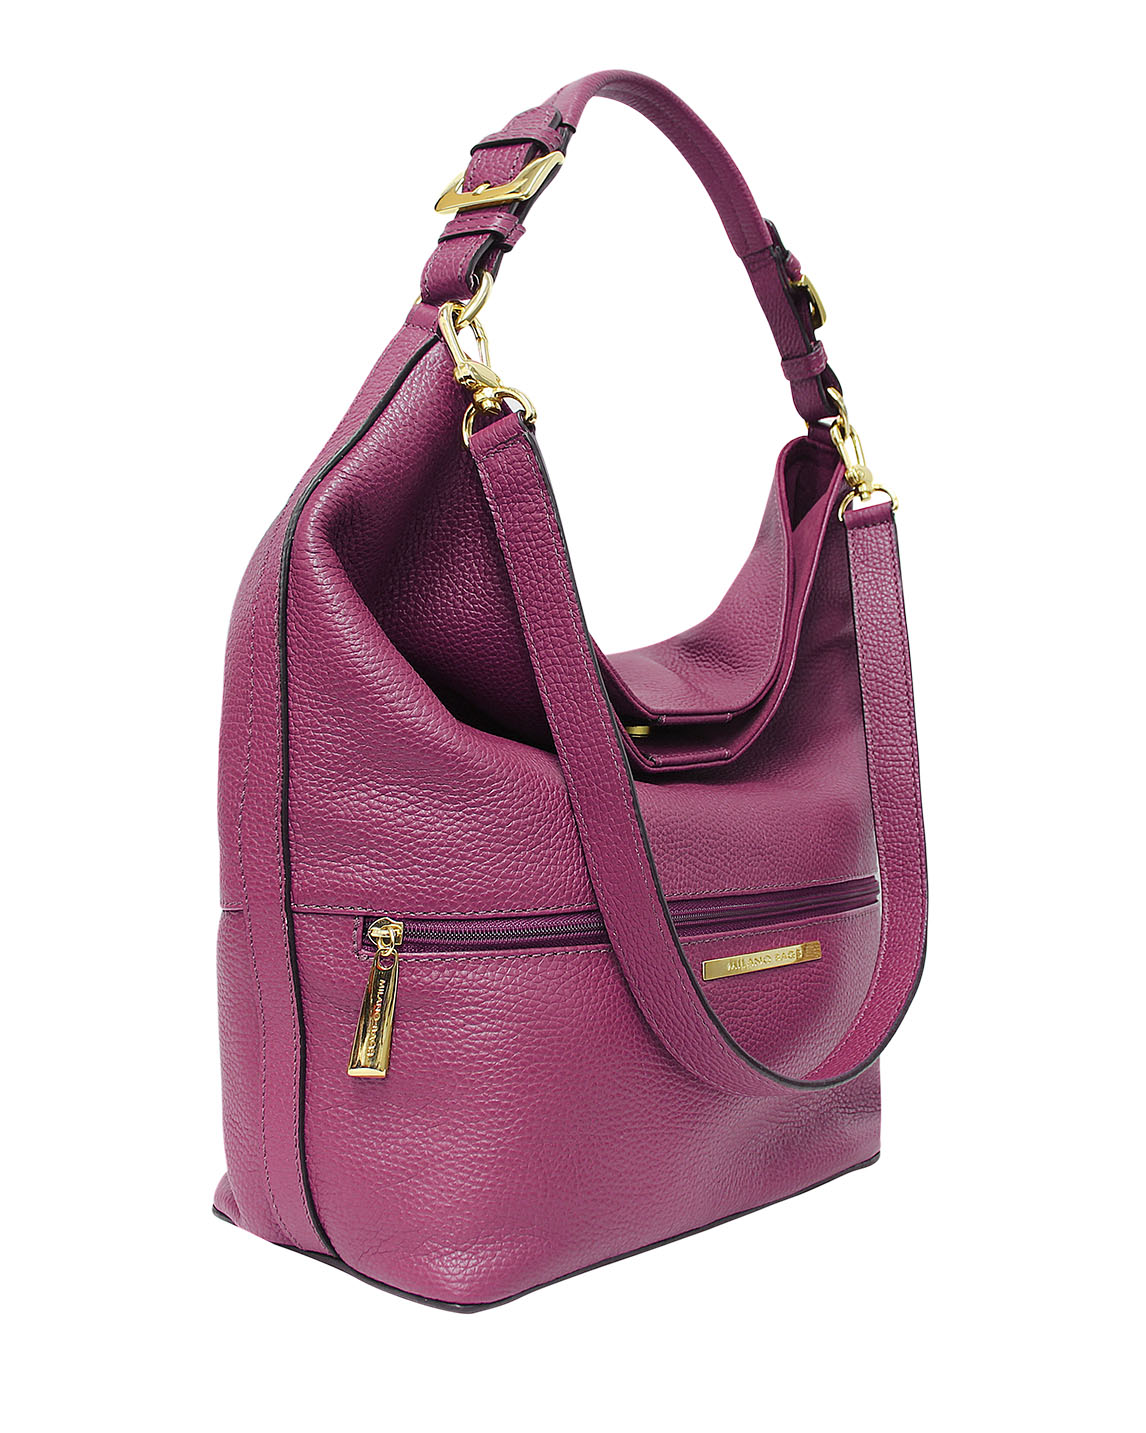 Cartera Tote Bag DS-2627 Color Fucsia